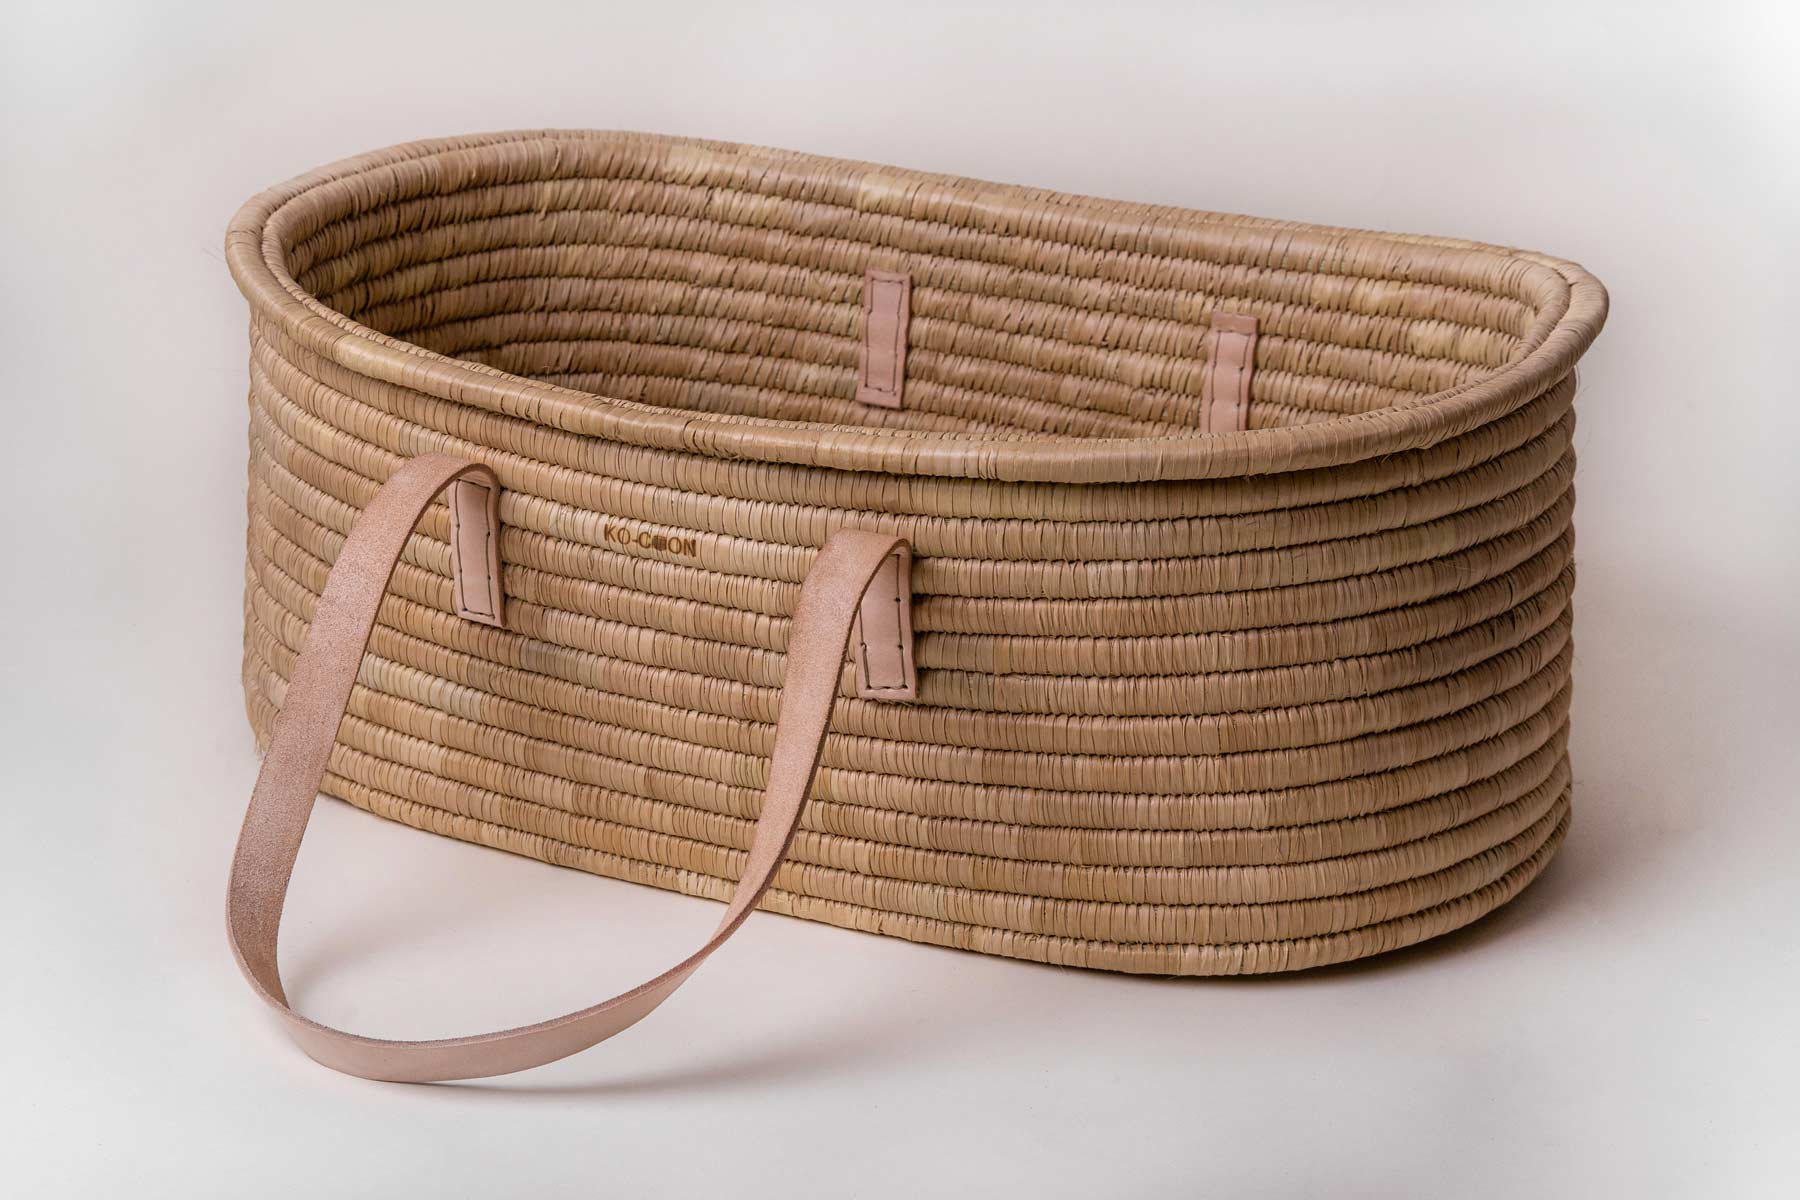 Moses Basket Ko-coon Timeless - Nude Leather handles (dispatch lead time 2 weeks)